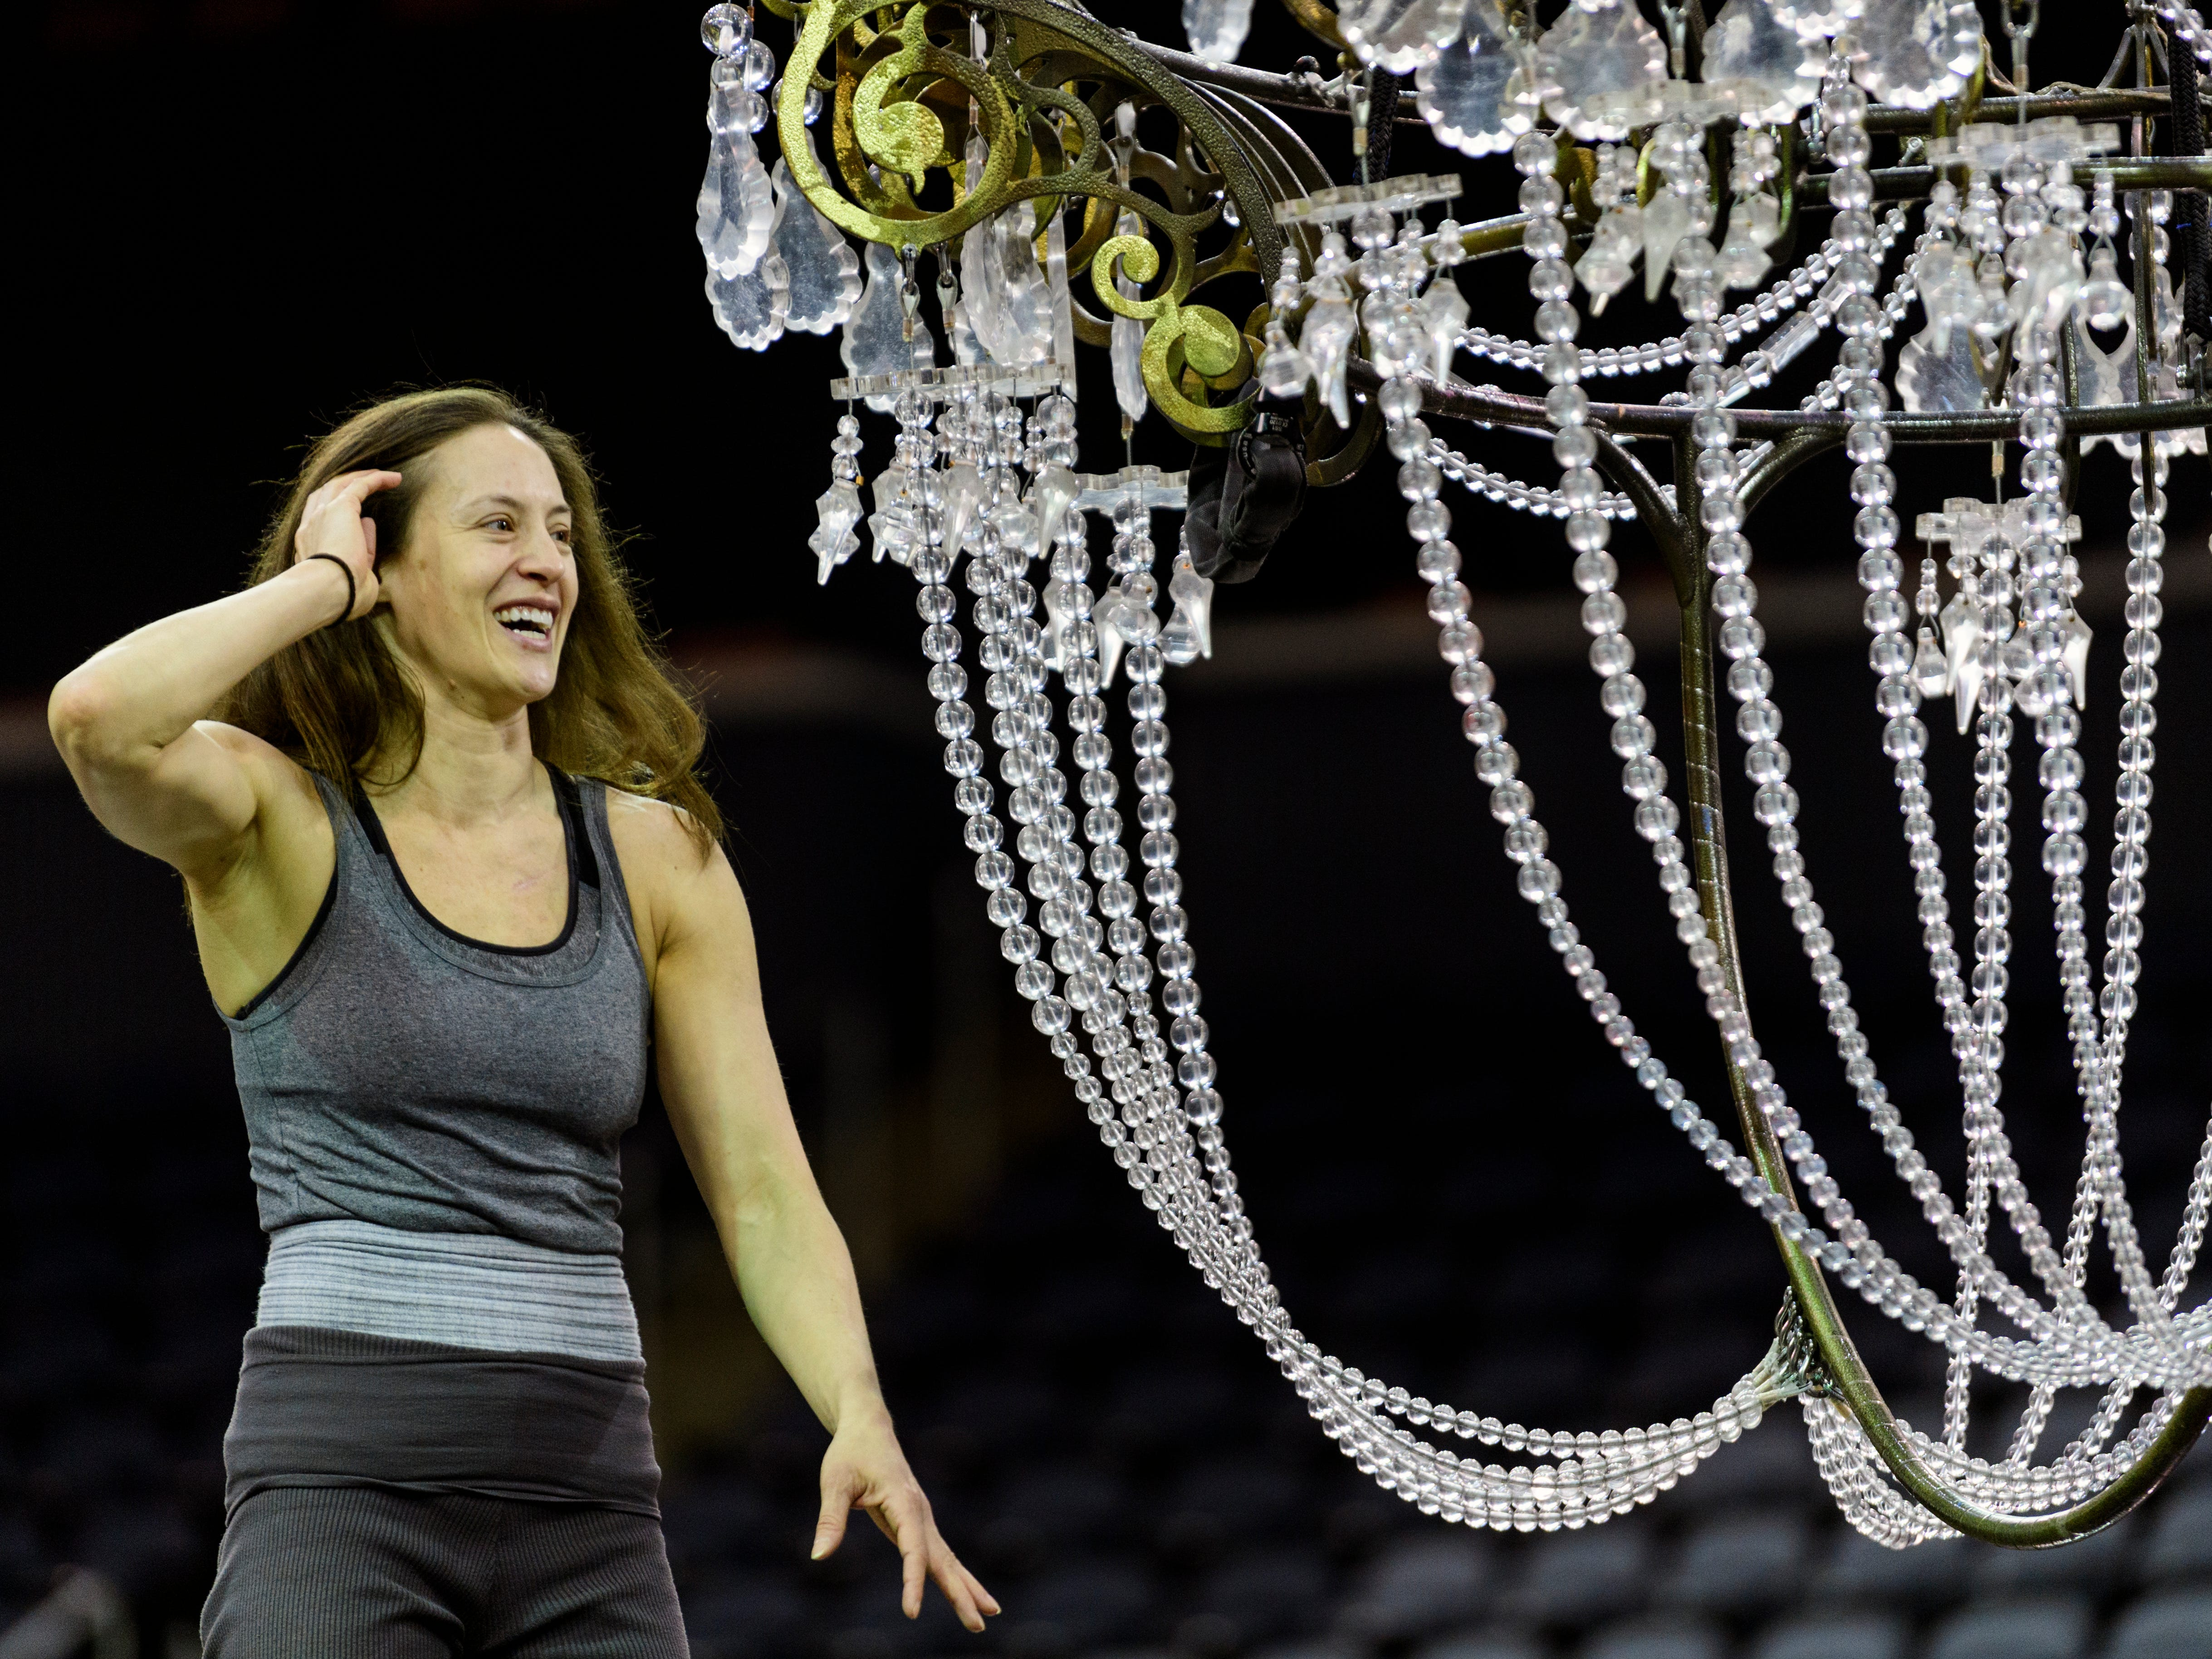 Erin Cervantes jokes around with other performers as they rehearse the opening act of the Cirque du Soleil Coreto show, which involves hanging from moving chandeliers, at Ford Center in Evansville, Ind., Wednesday, Jan. 23, 2019.